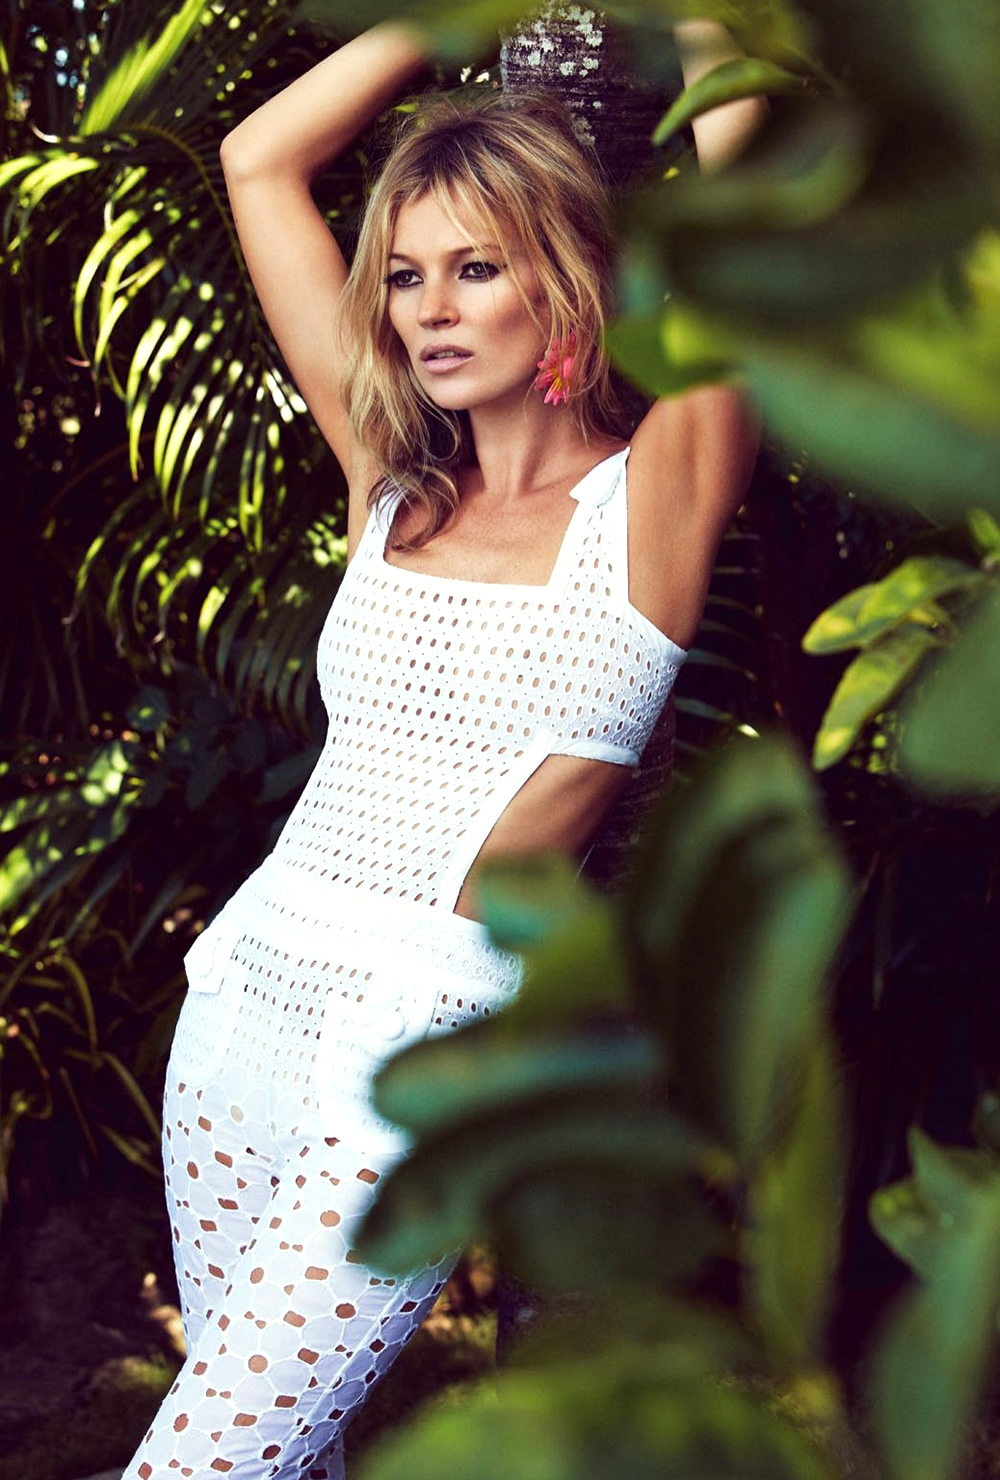 Kate-Moss-by-Patrick-Demarchelier-for-Vogue-UK-June-2013-3